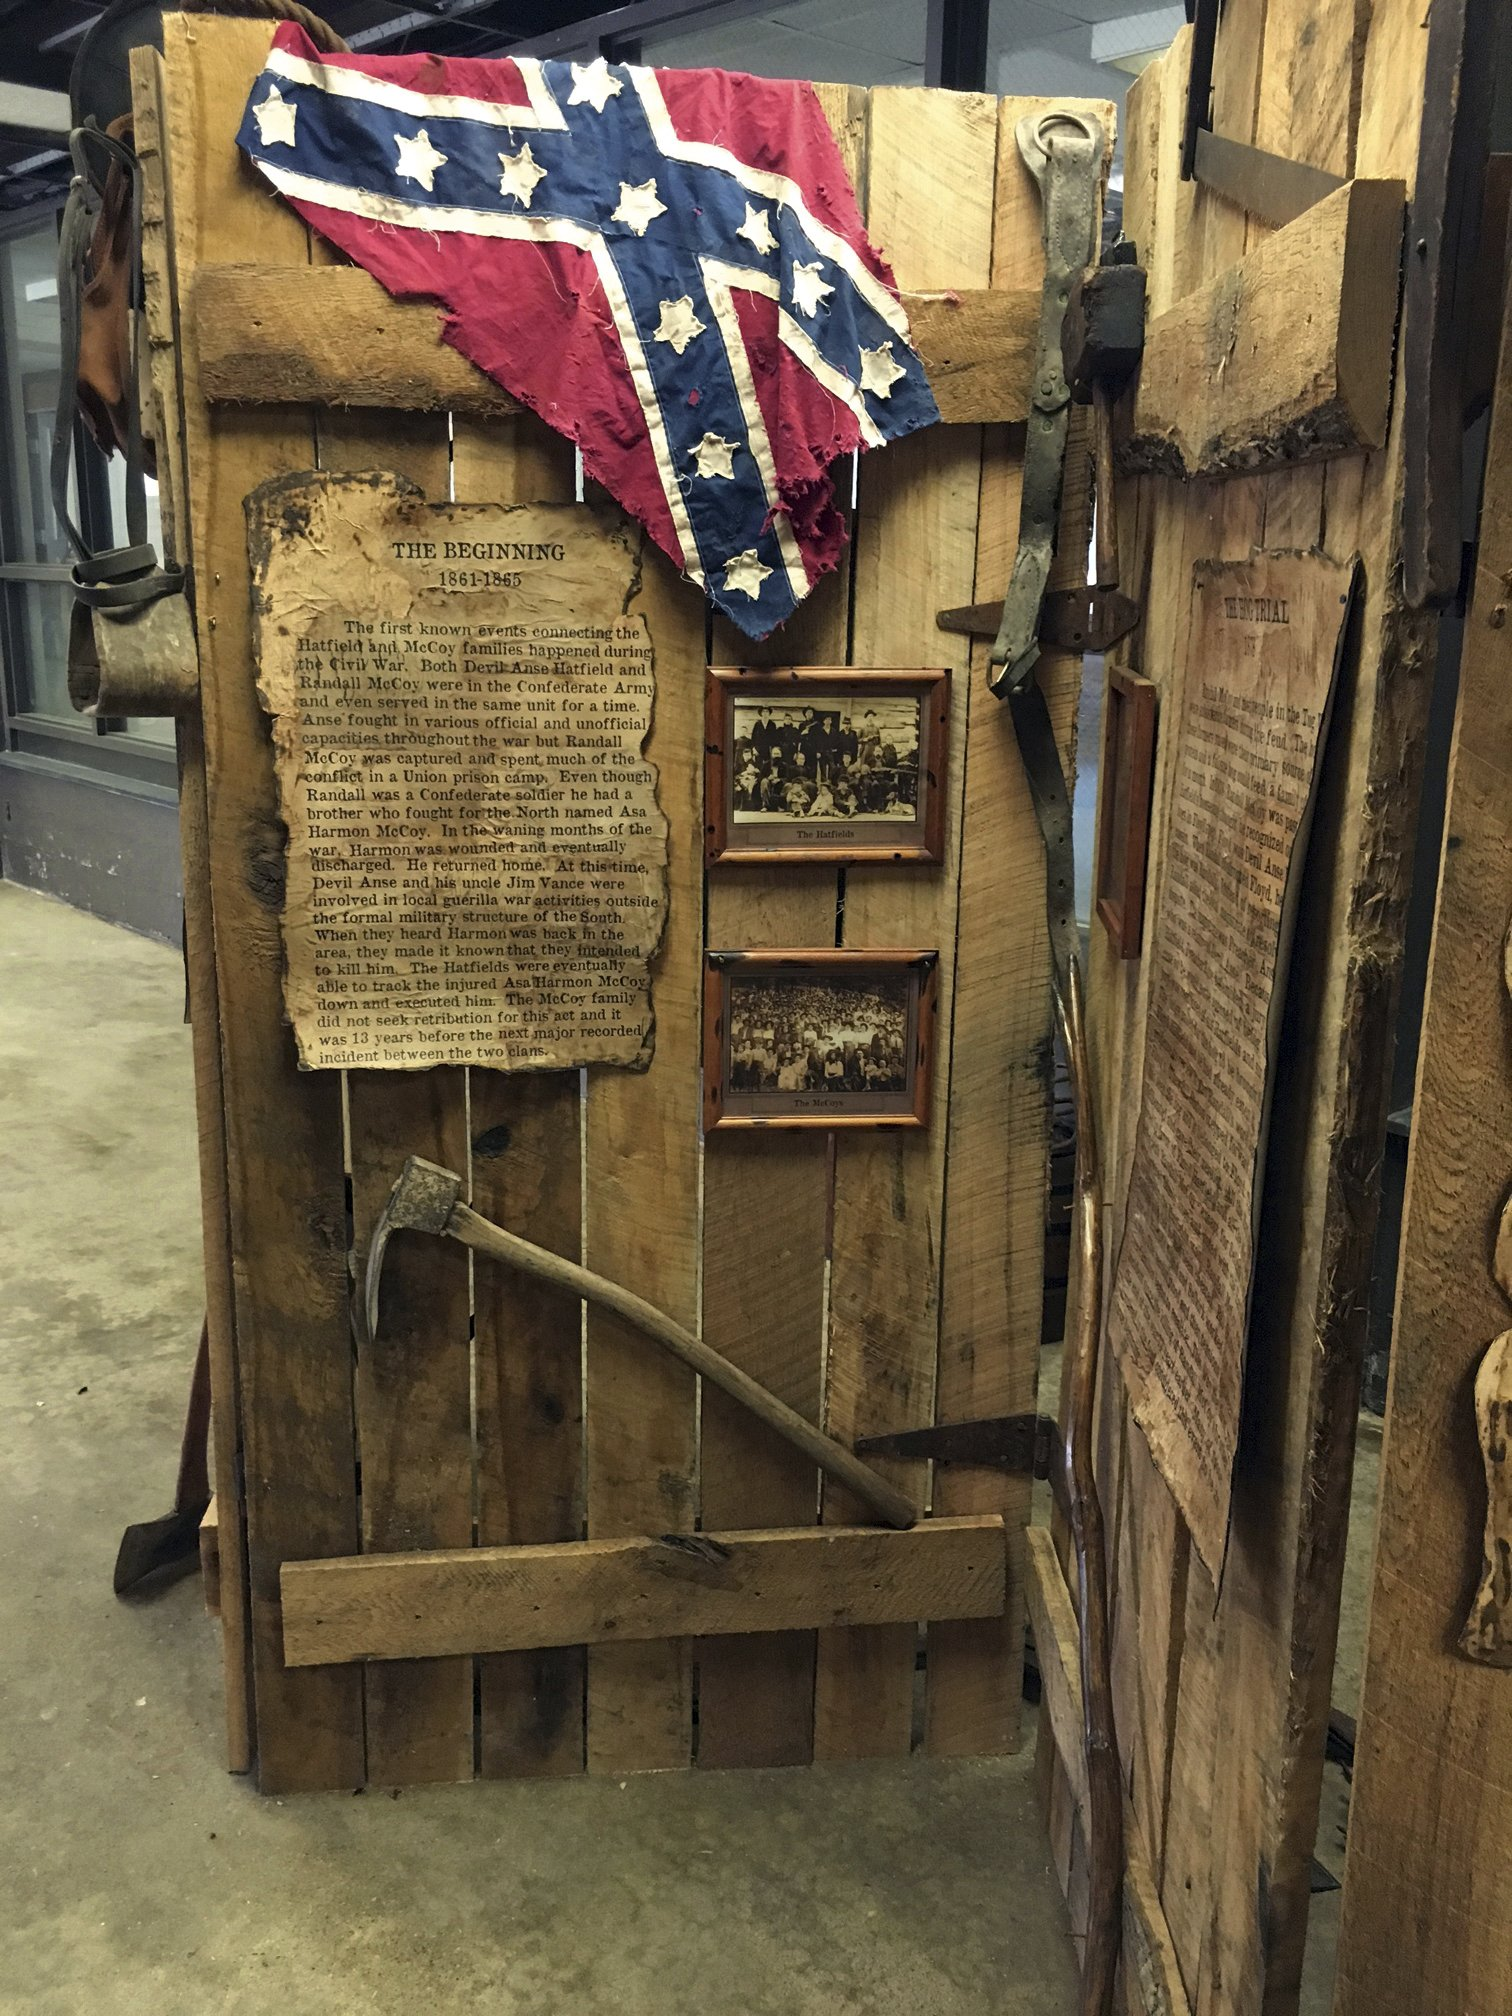 Museum Showcases Relics From Hatfield U0026 McCoy Feud